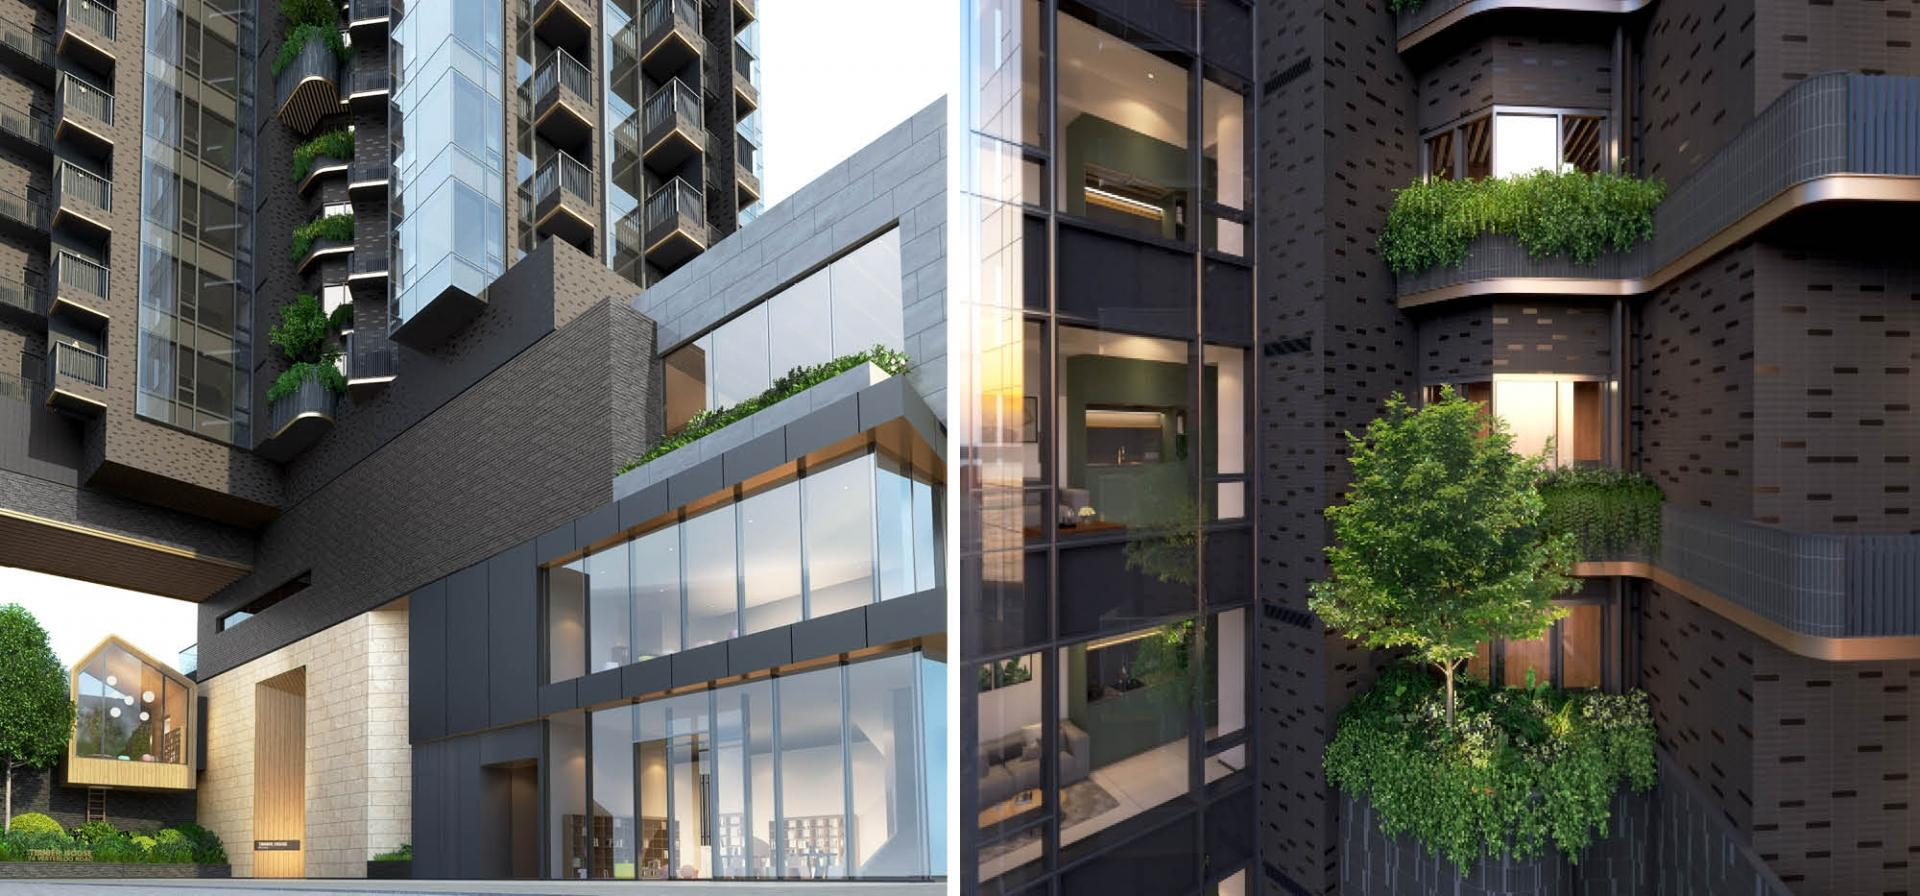 7 Recently Launched Luxury Residential Develops in Hong Kong that We Love